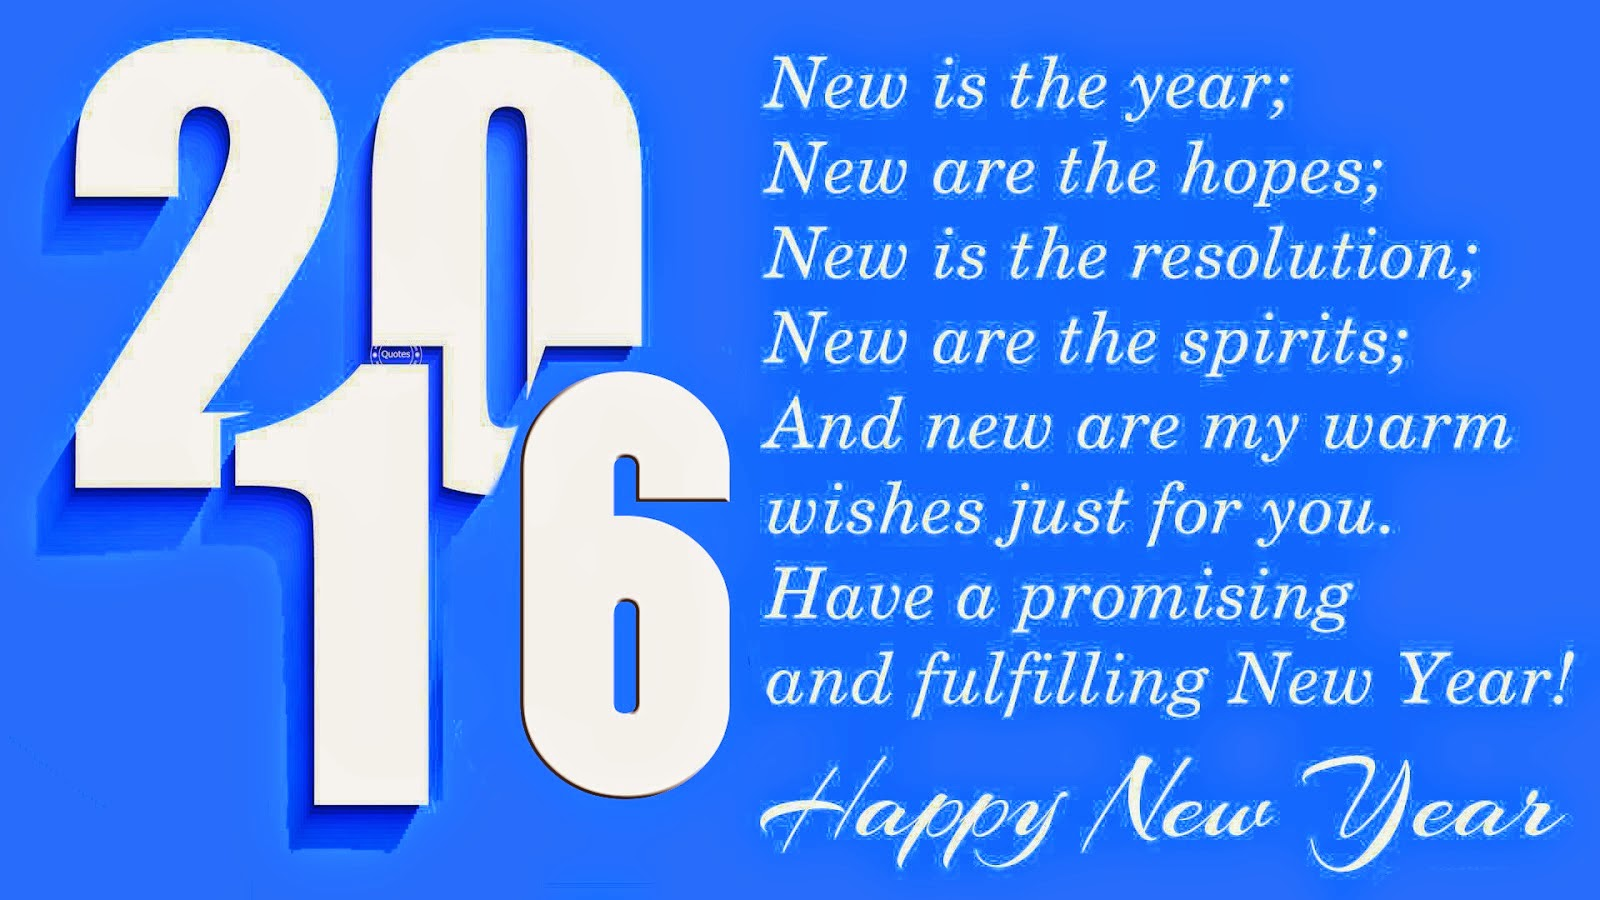 2016 happy new year quotes in english new year quotes 2016